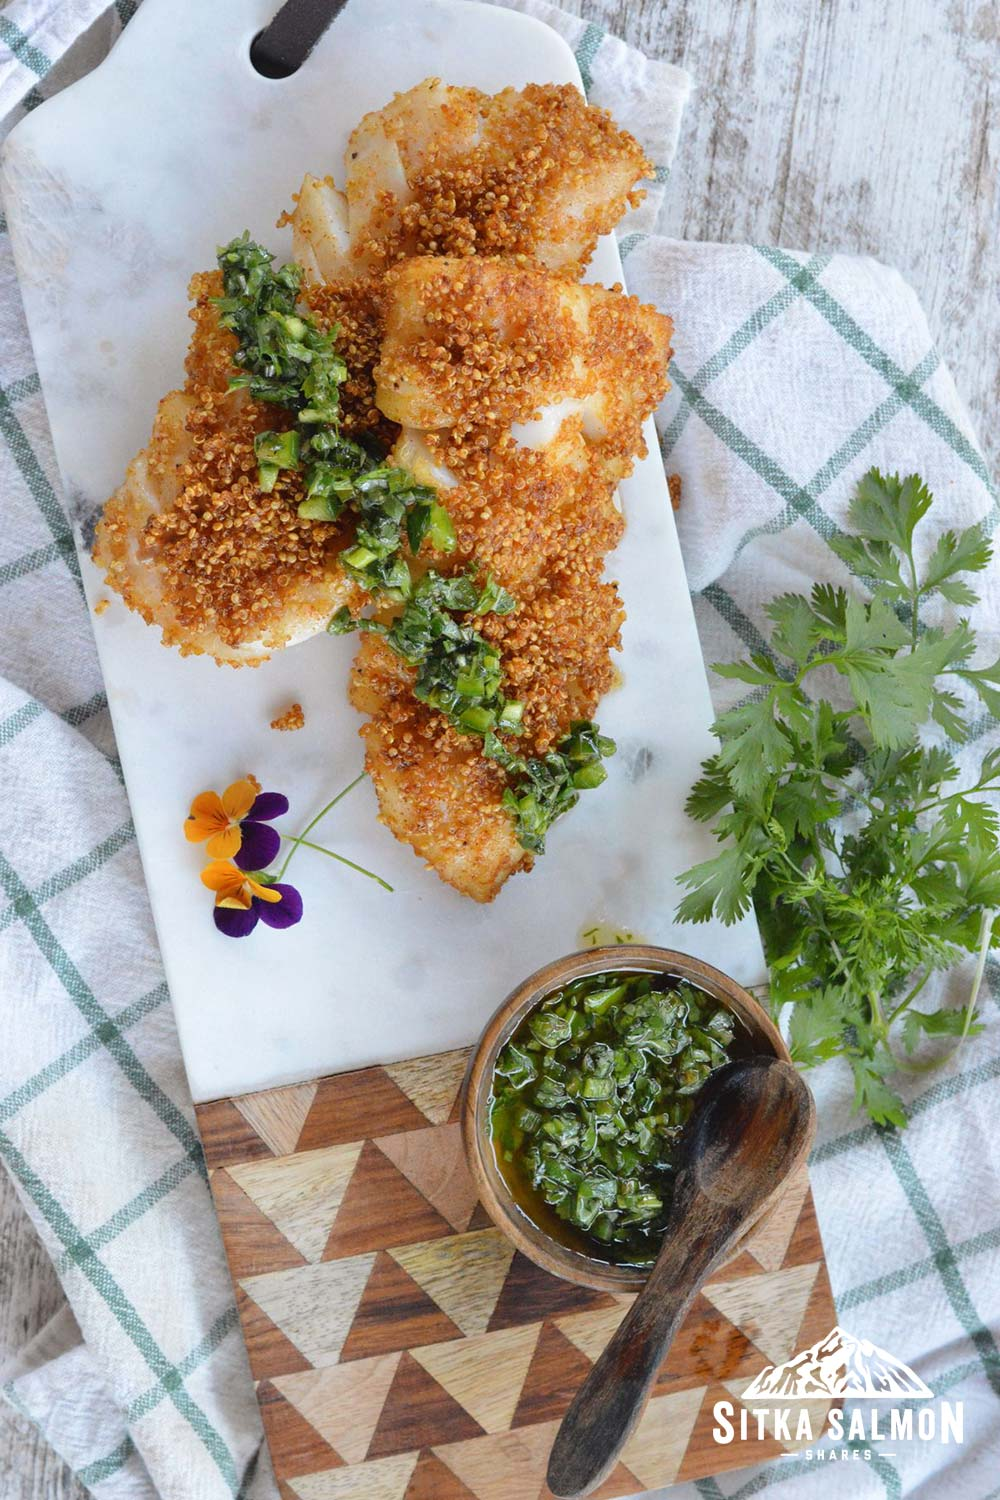 Quinoa Crusted Pacific Cod with Mojo Verde Recipe | Sitka Salmon Shares